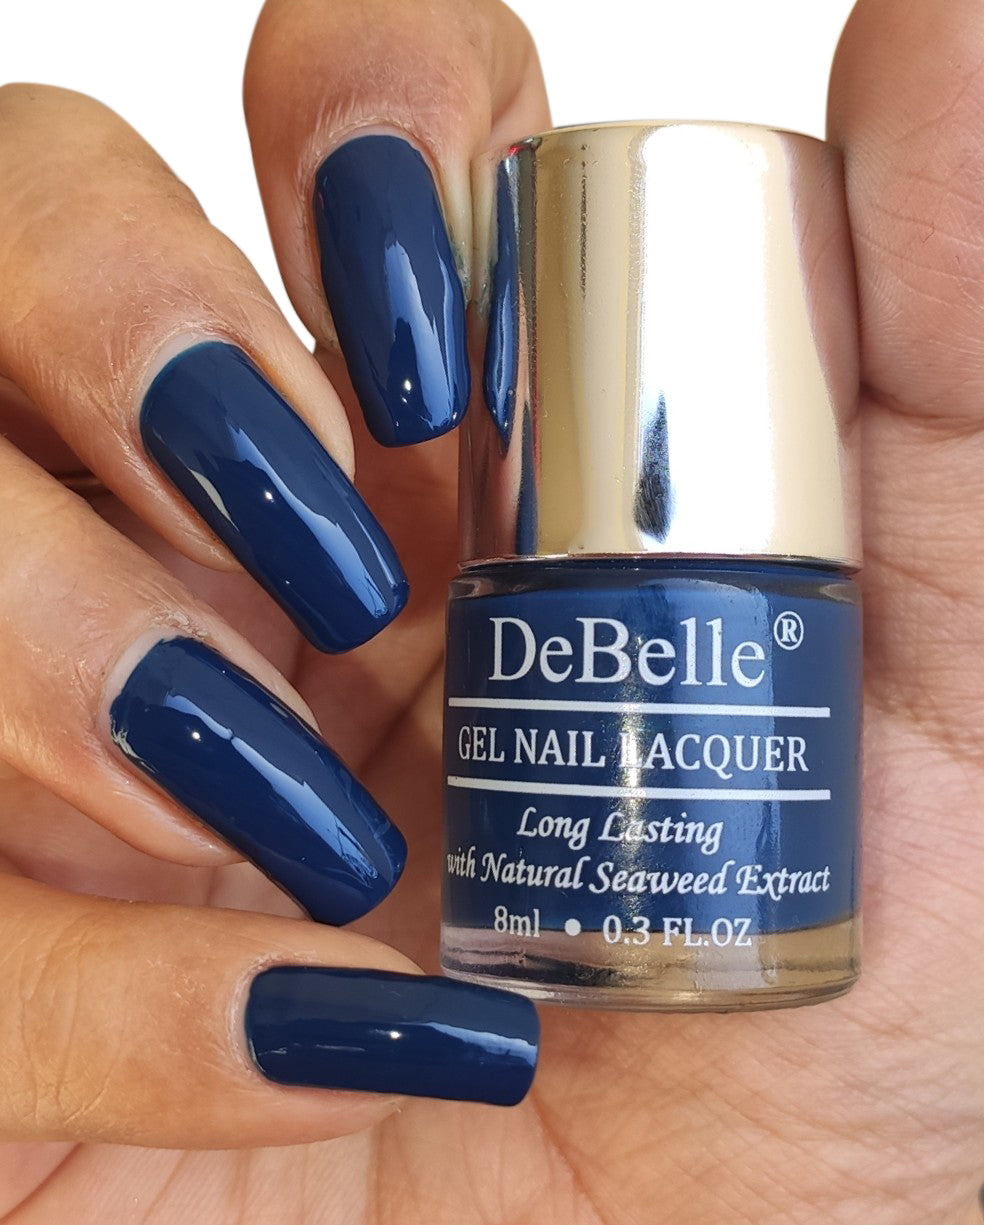 DeBelle Gel Nail Lacquer Bleu Allure (Navy Blue Nail Polish), 8ml